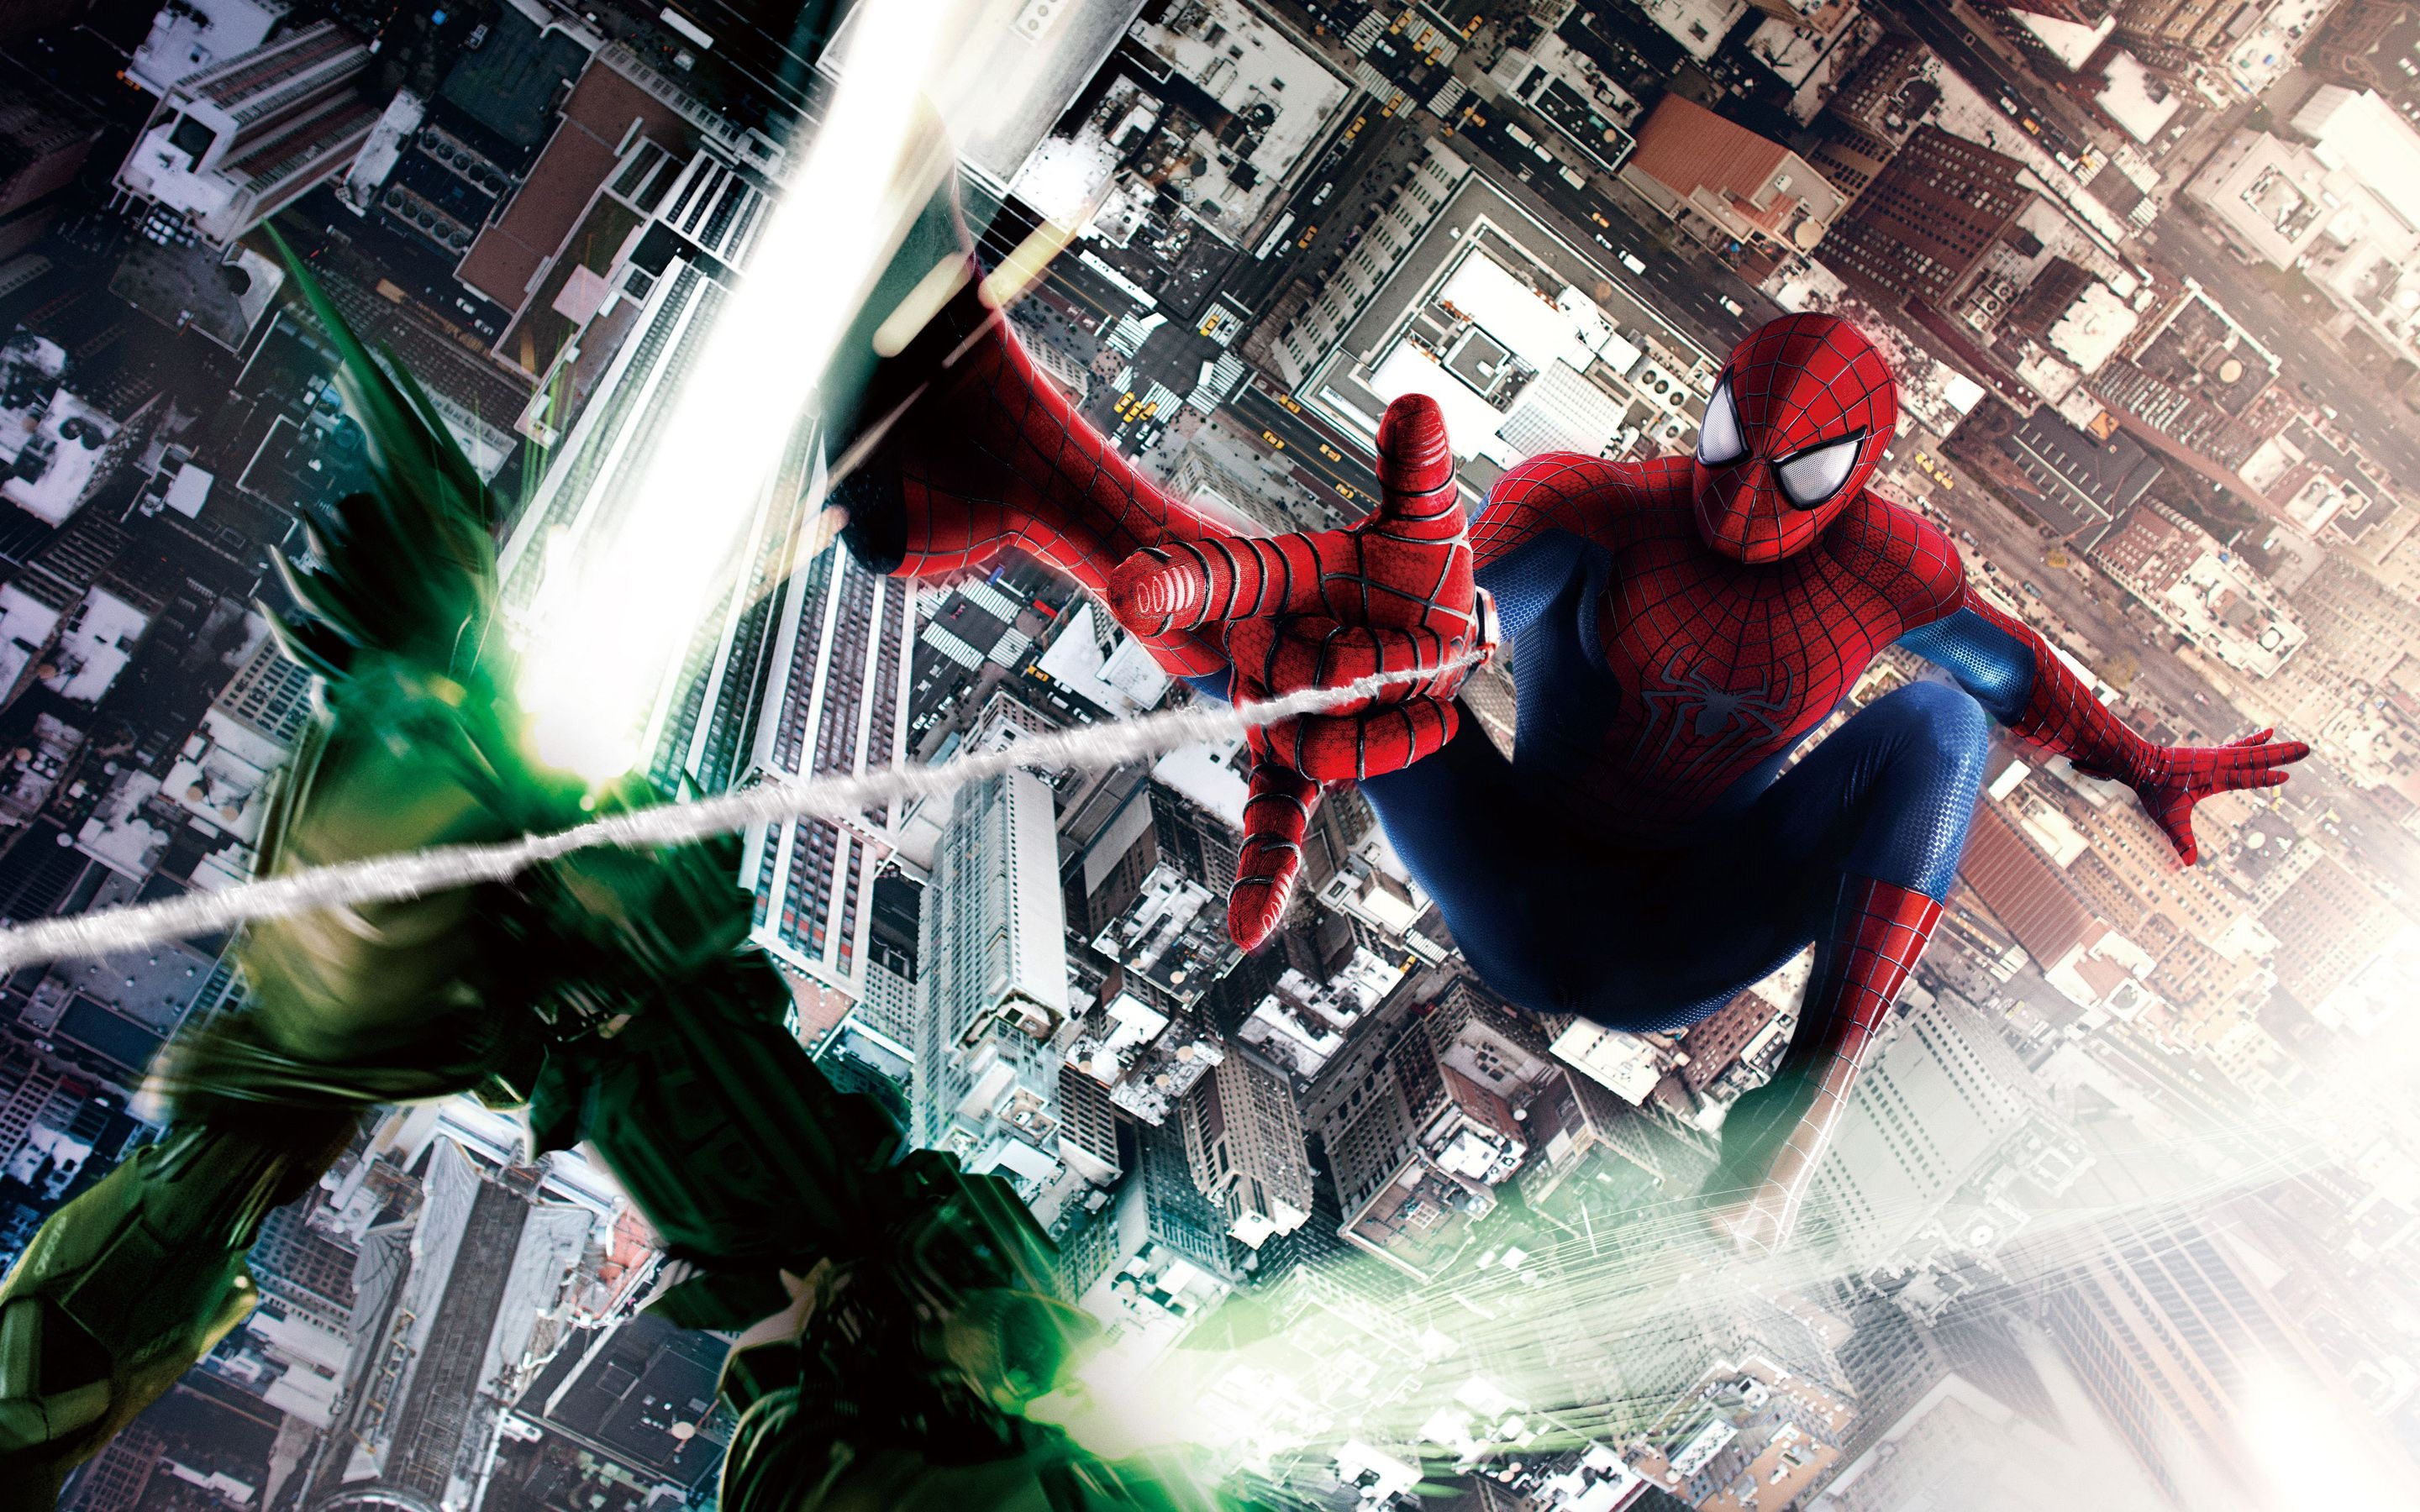 The Amazing Spider Man 2 Movie 2014 HD Wallpaper